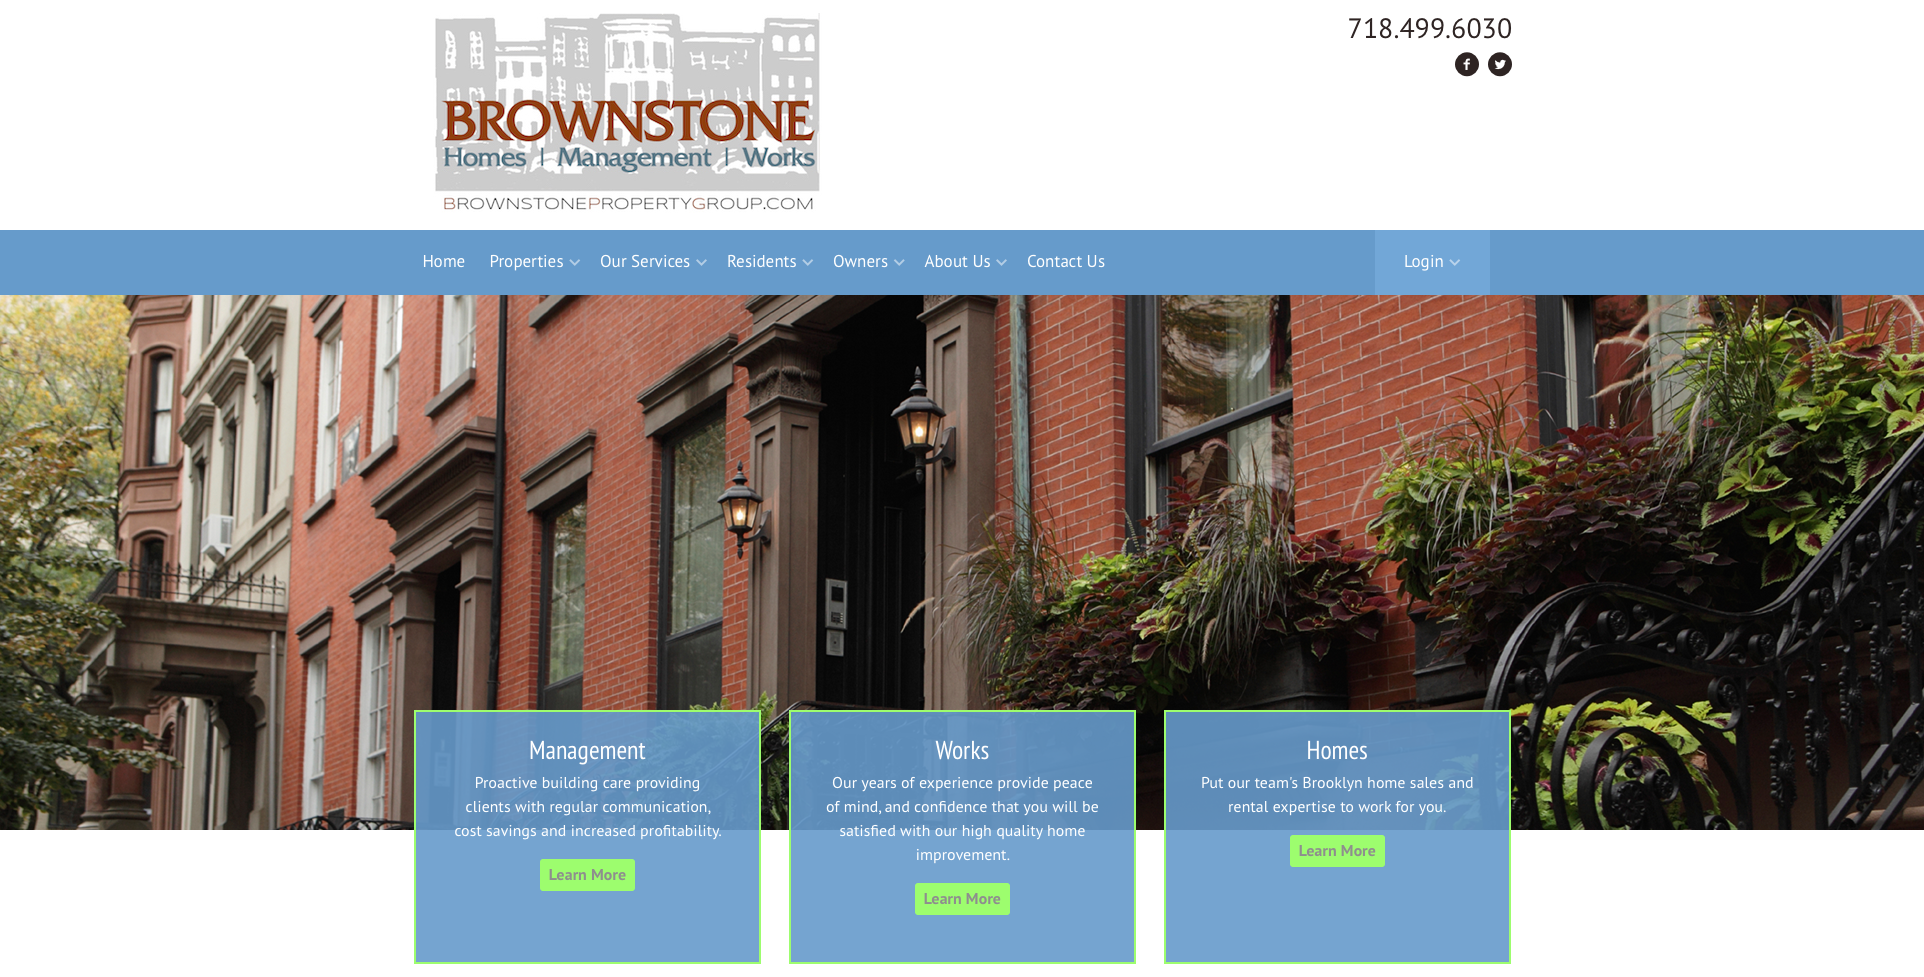 BROWNSTONE PROPERTY GROUP